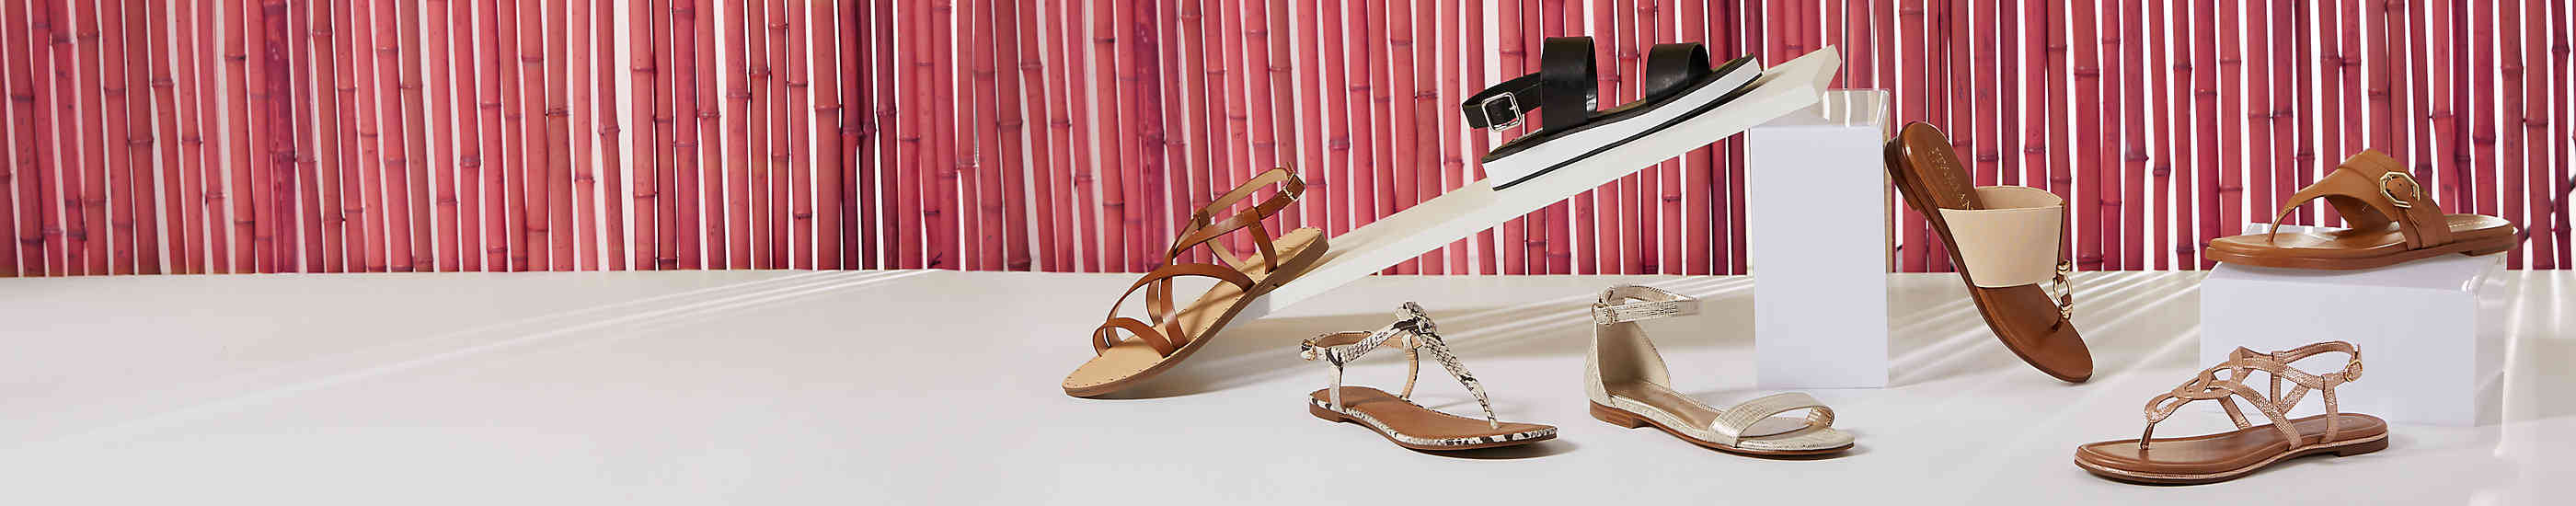 For WomenDsw Flat Flat Sandals Sandals WH29EIYD